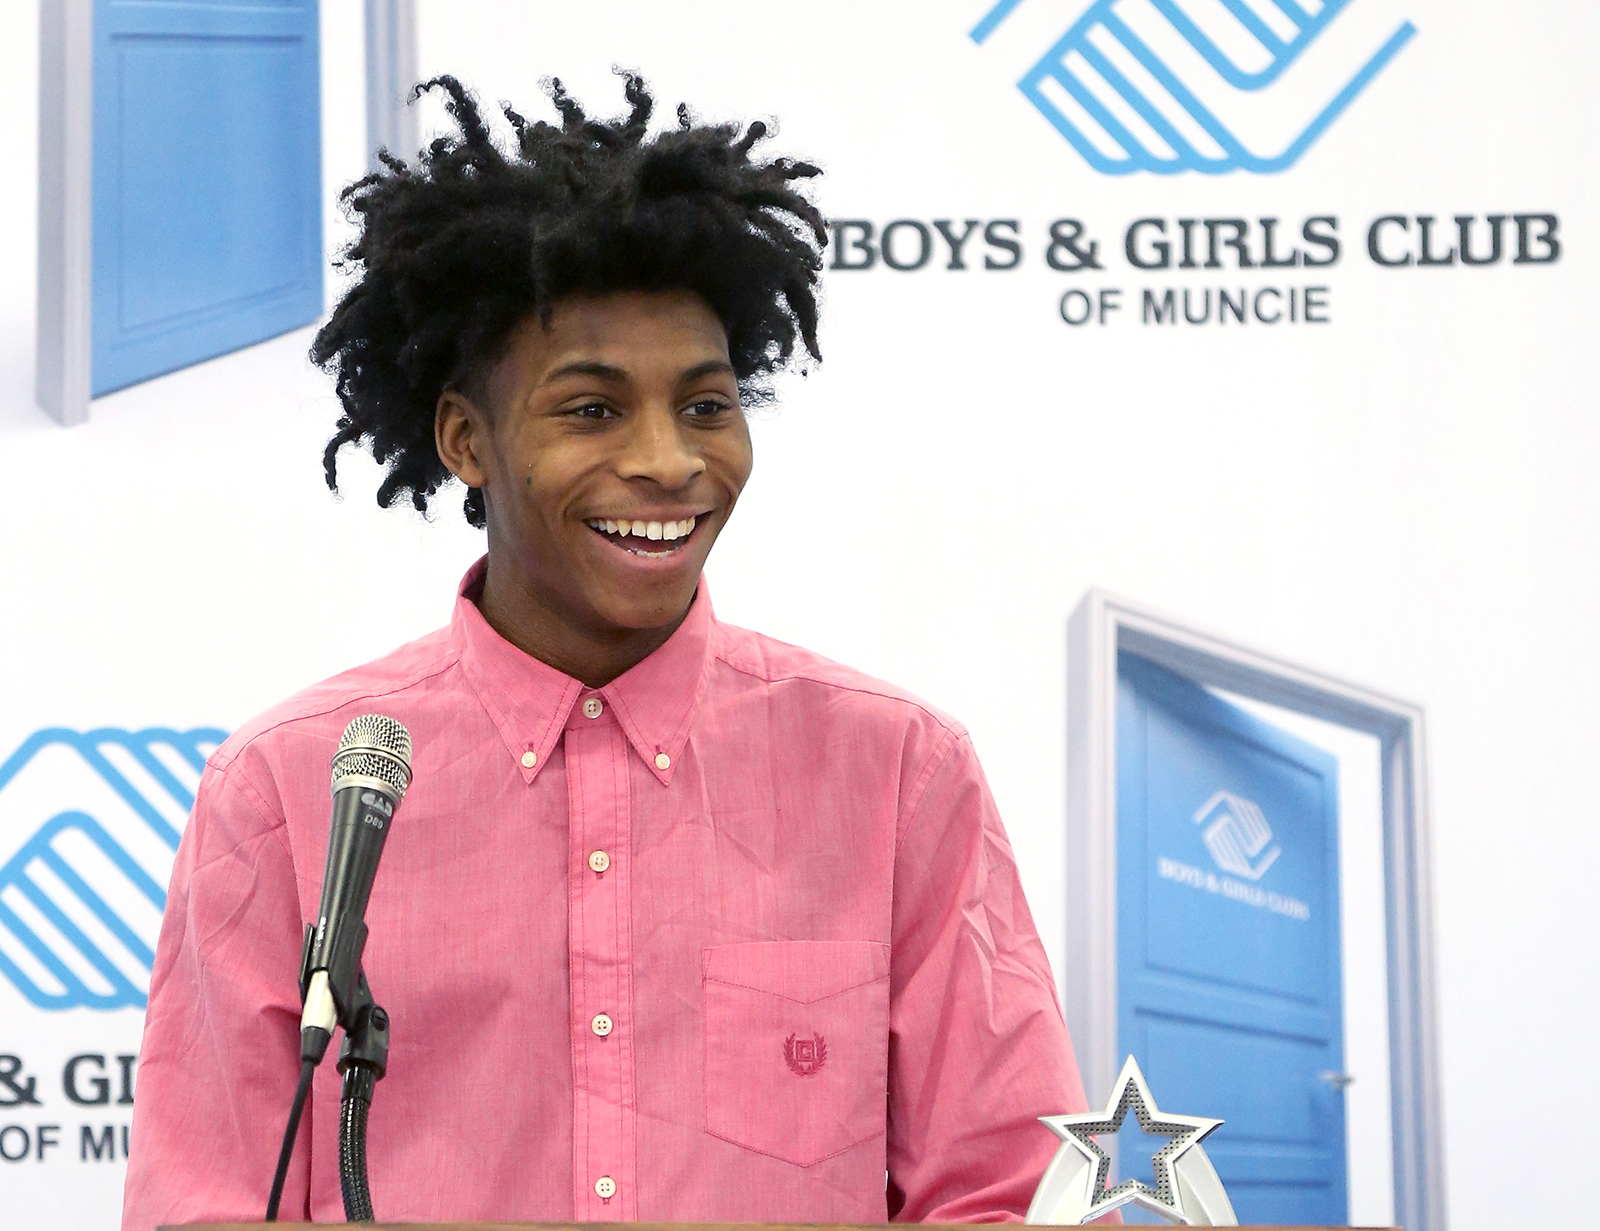 BGC 2018 Youth of the Year